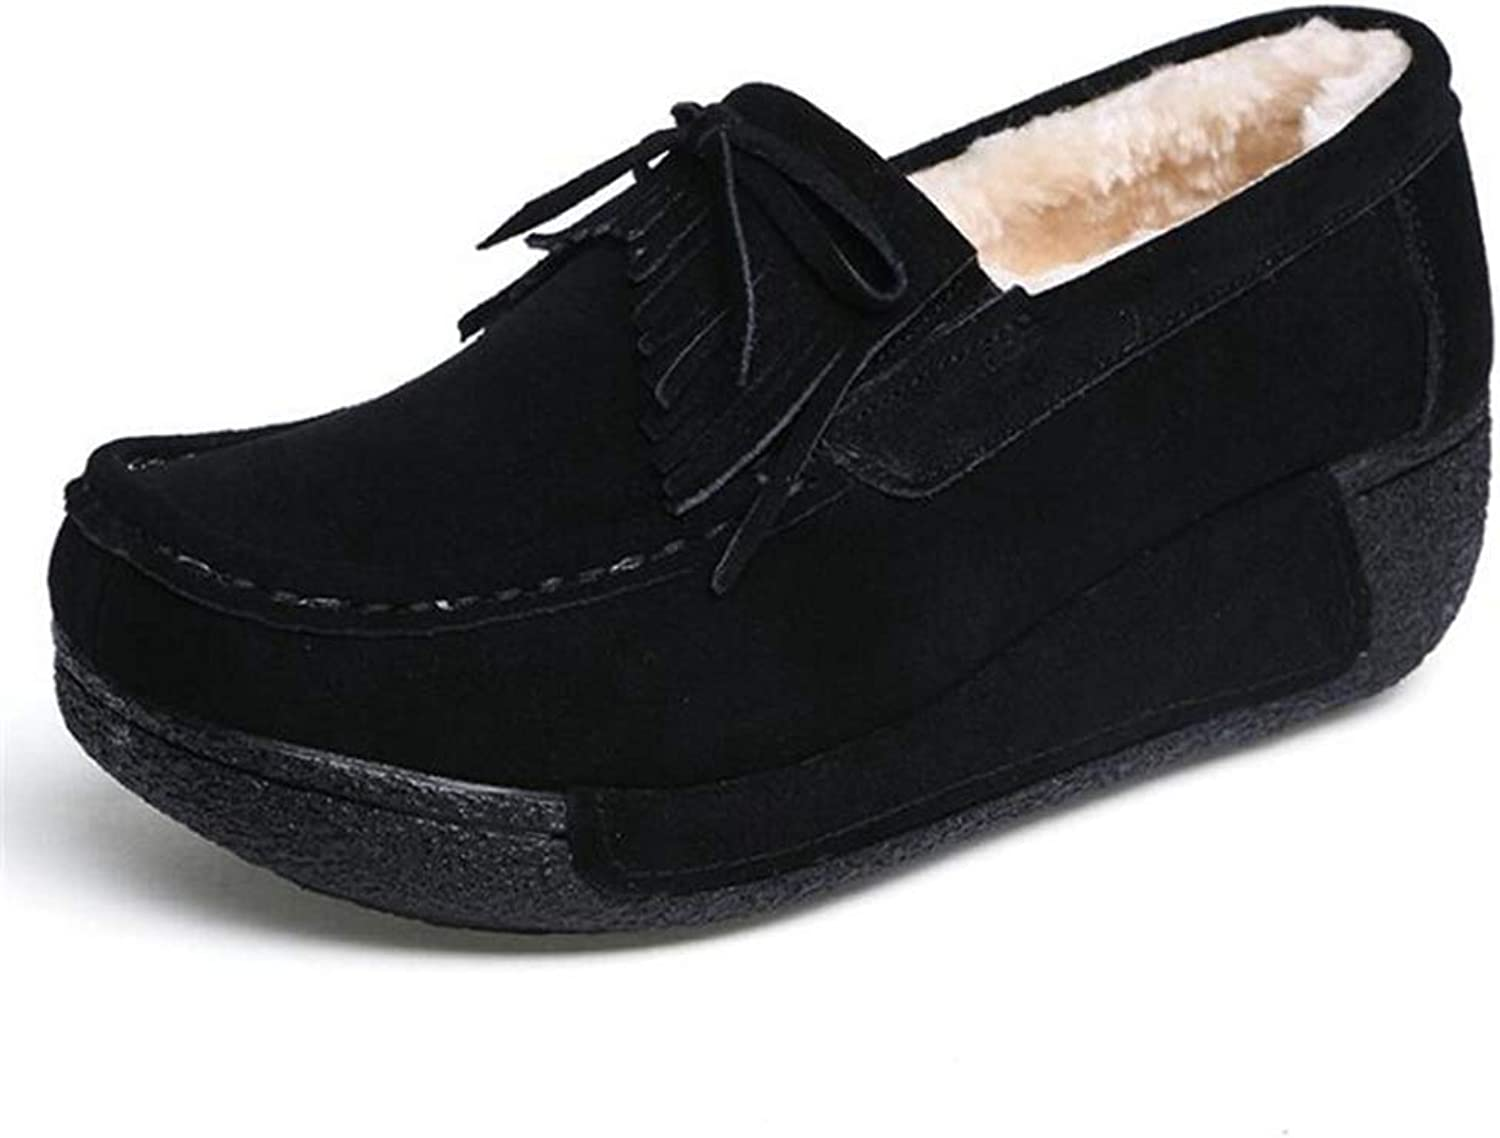 T-JULY Women Flats Platform Suede Leather shoes Winter Keep Warm Plush Fur Casual Loafers